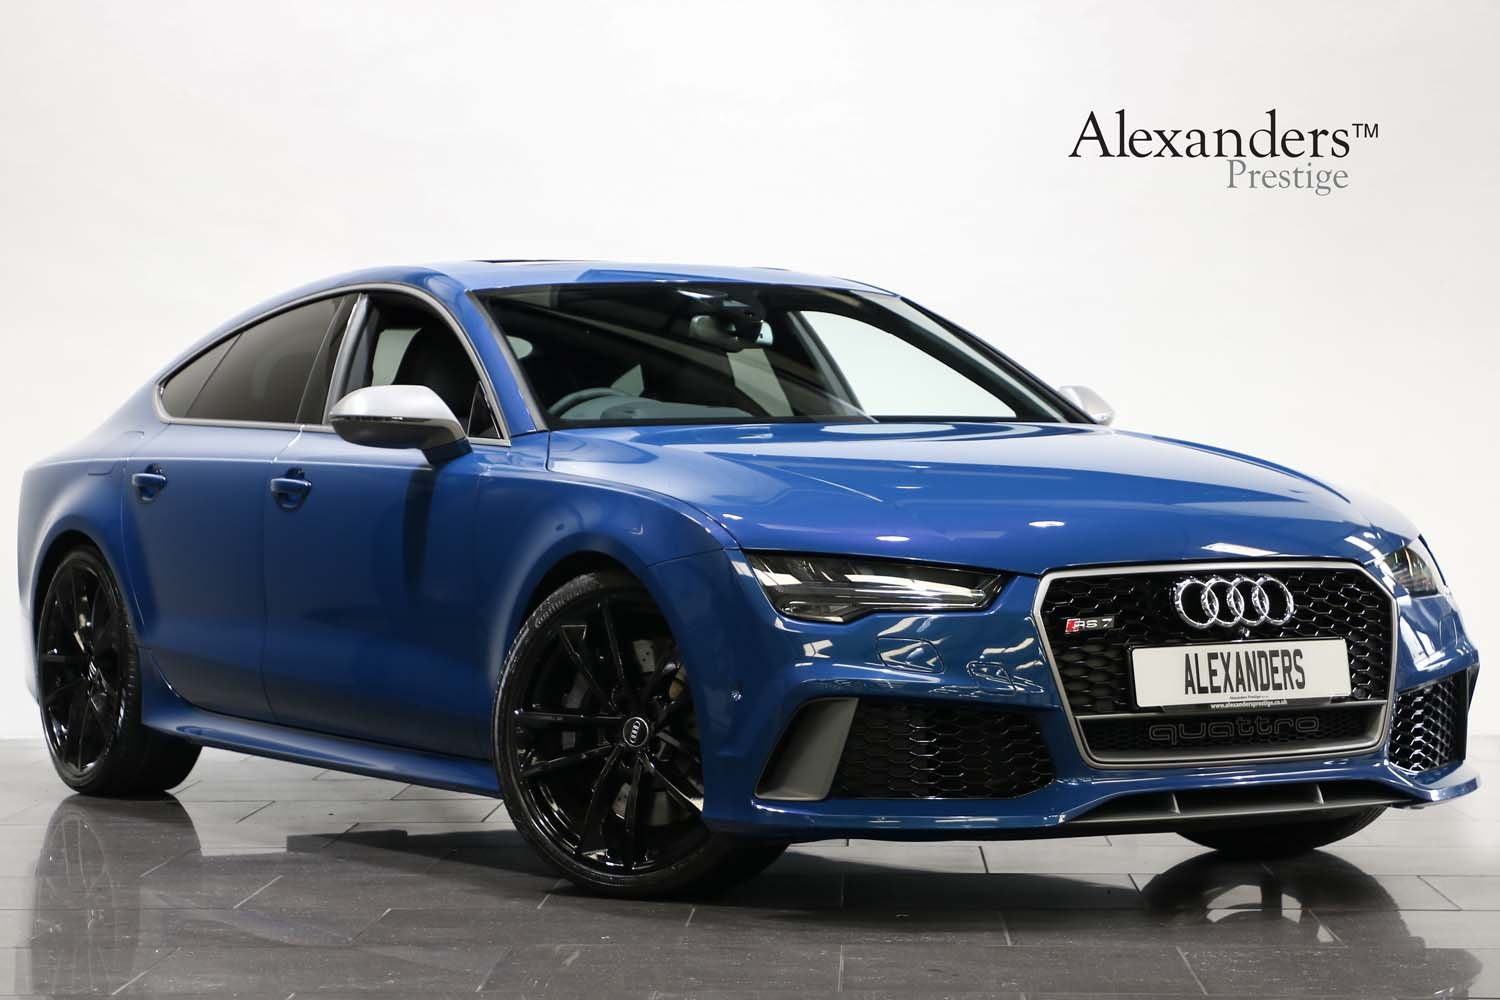 2016 66 AUDI RS7 PERFORMANCE SPORTBACK 4.0 TFSI QUATTRO S TRONIC For Sale (picture 1 of 6)